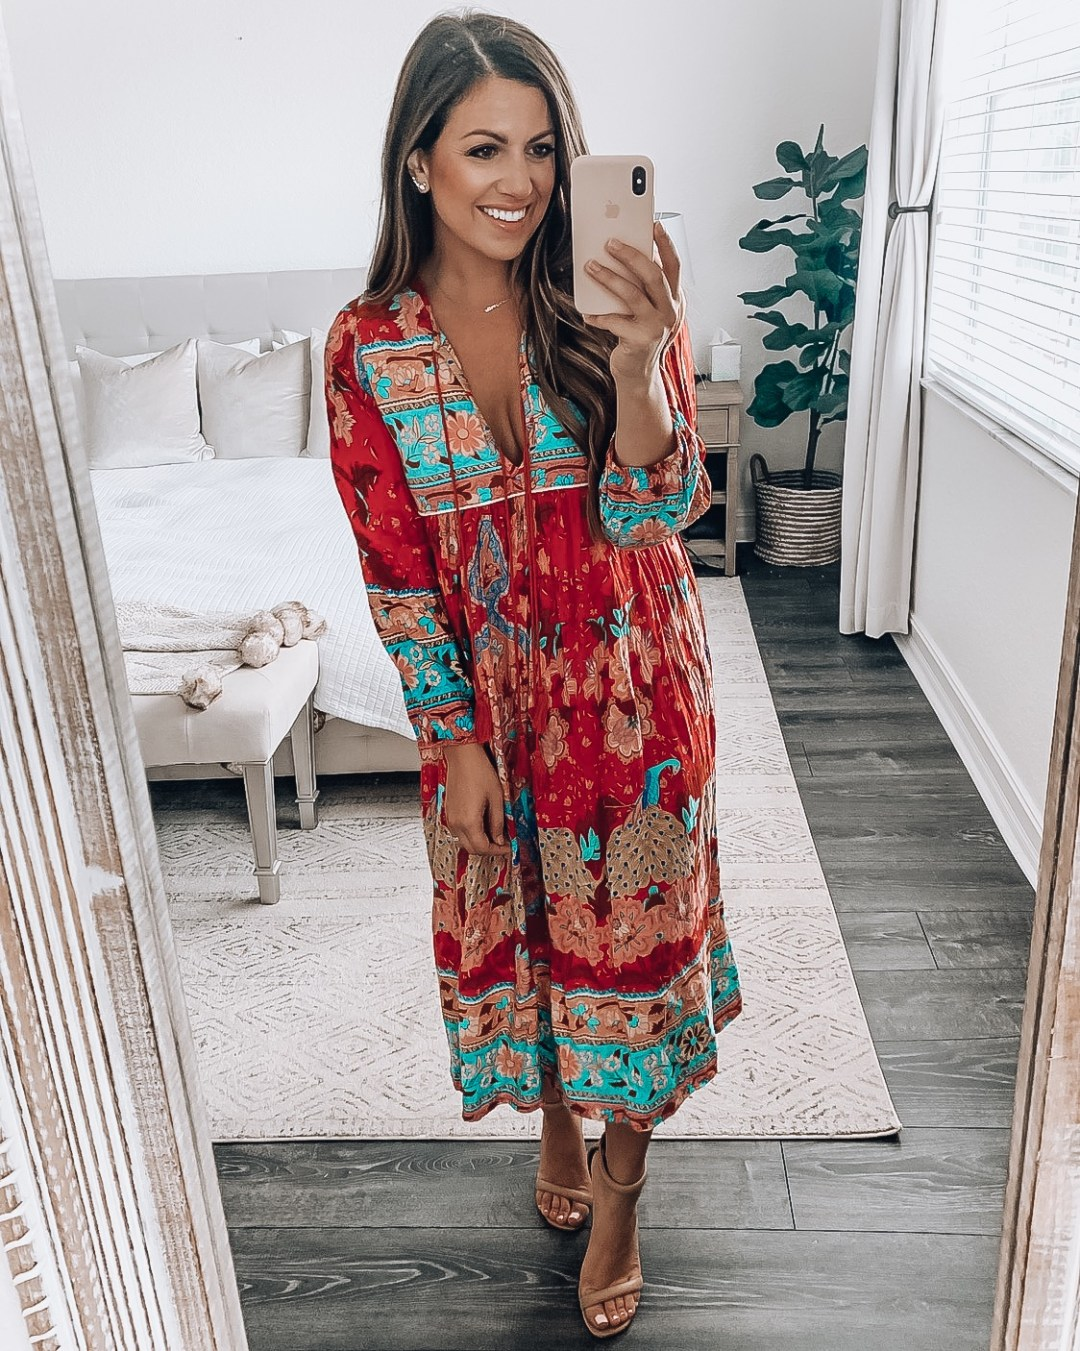 Amazon Fashion boho dress, bohemian style maxi dress